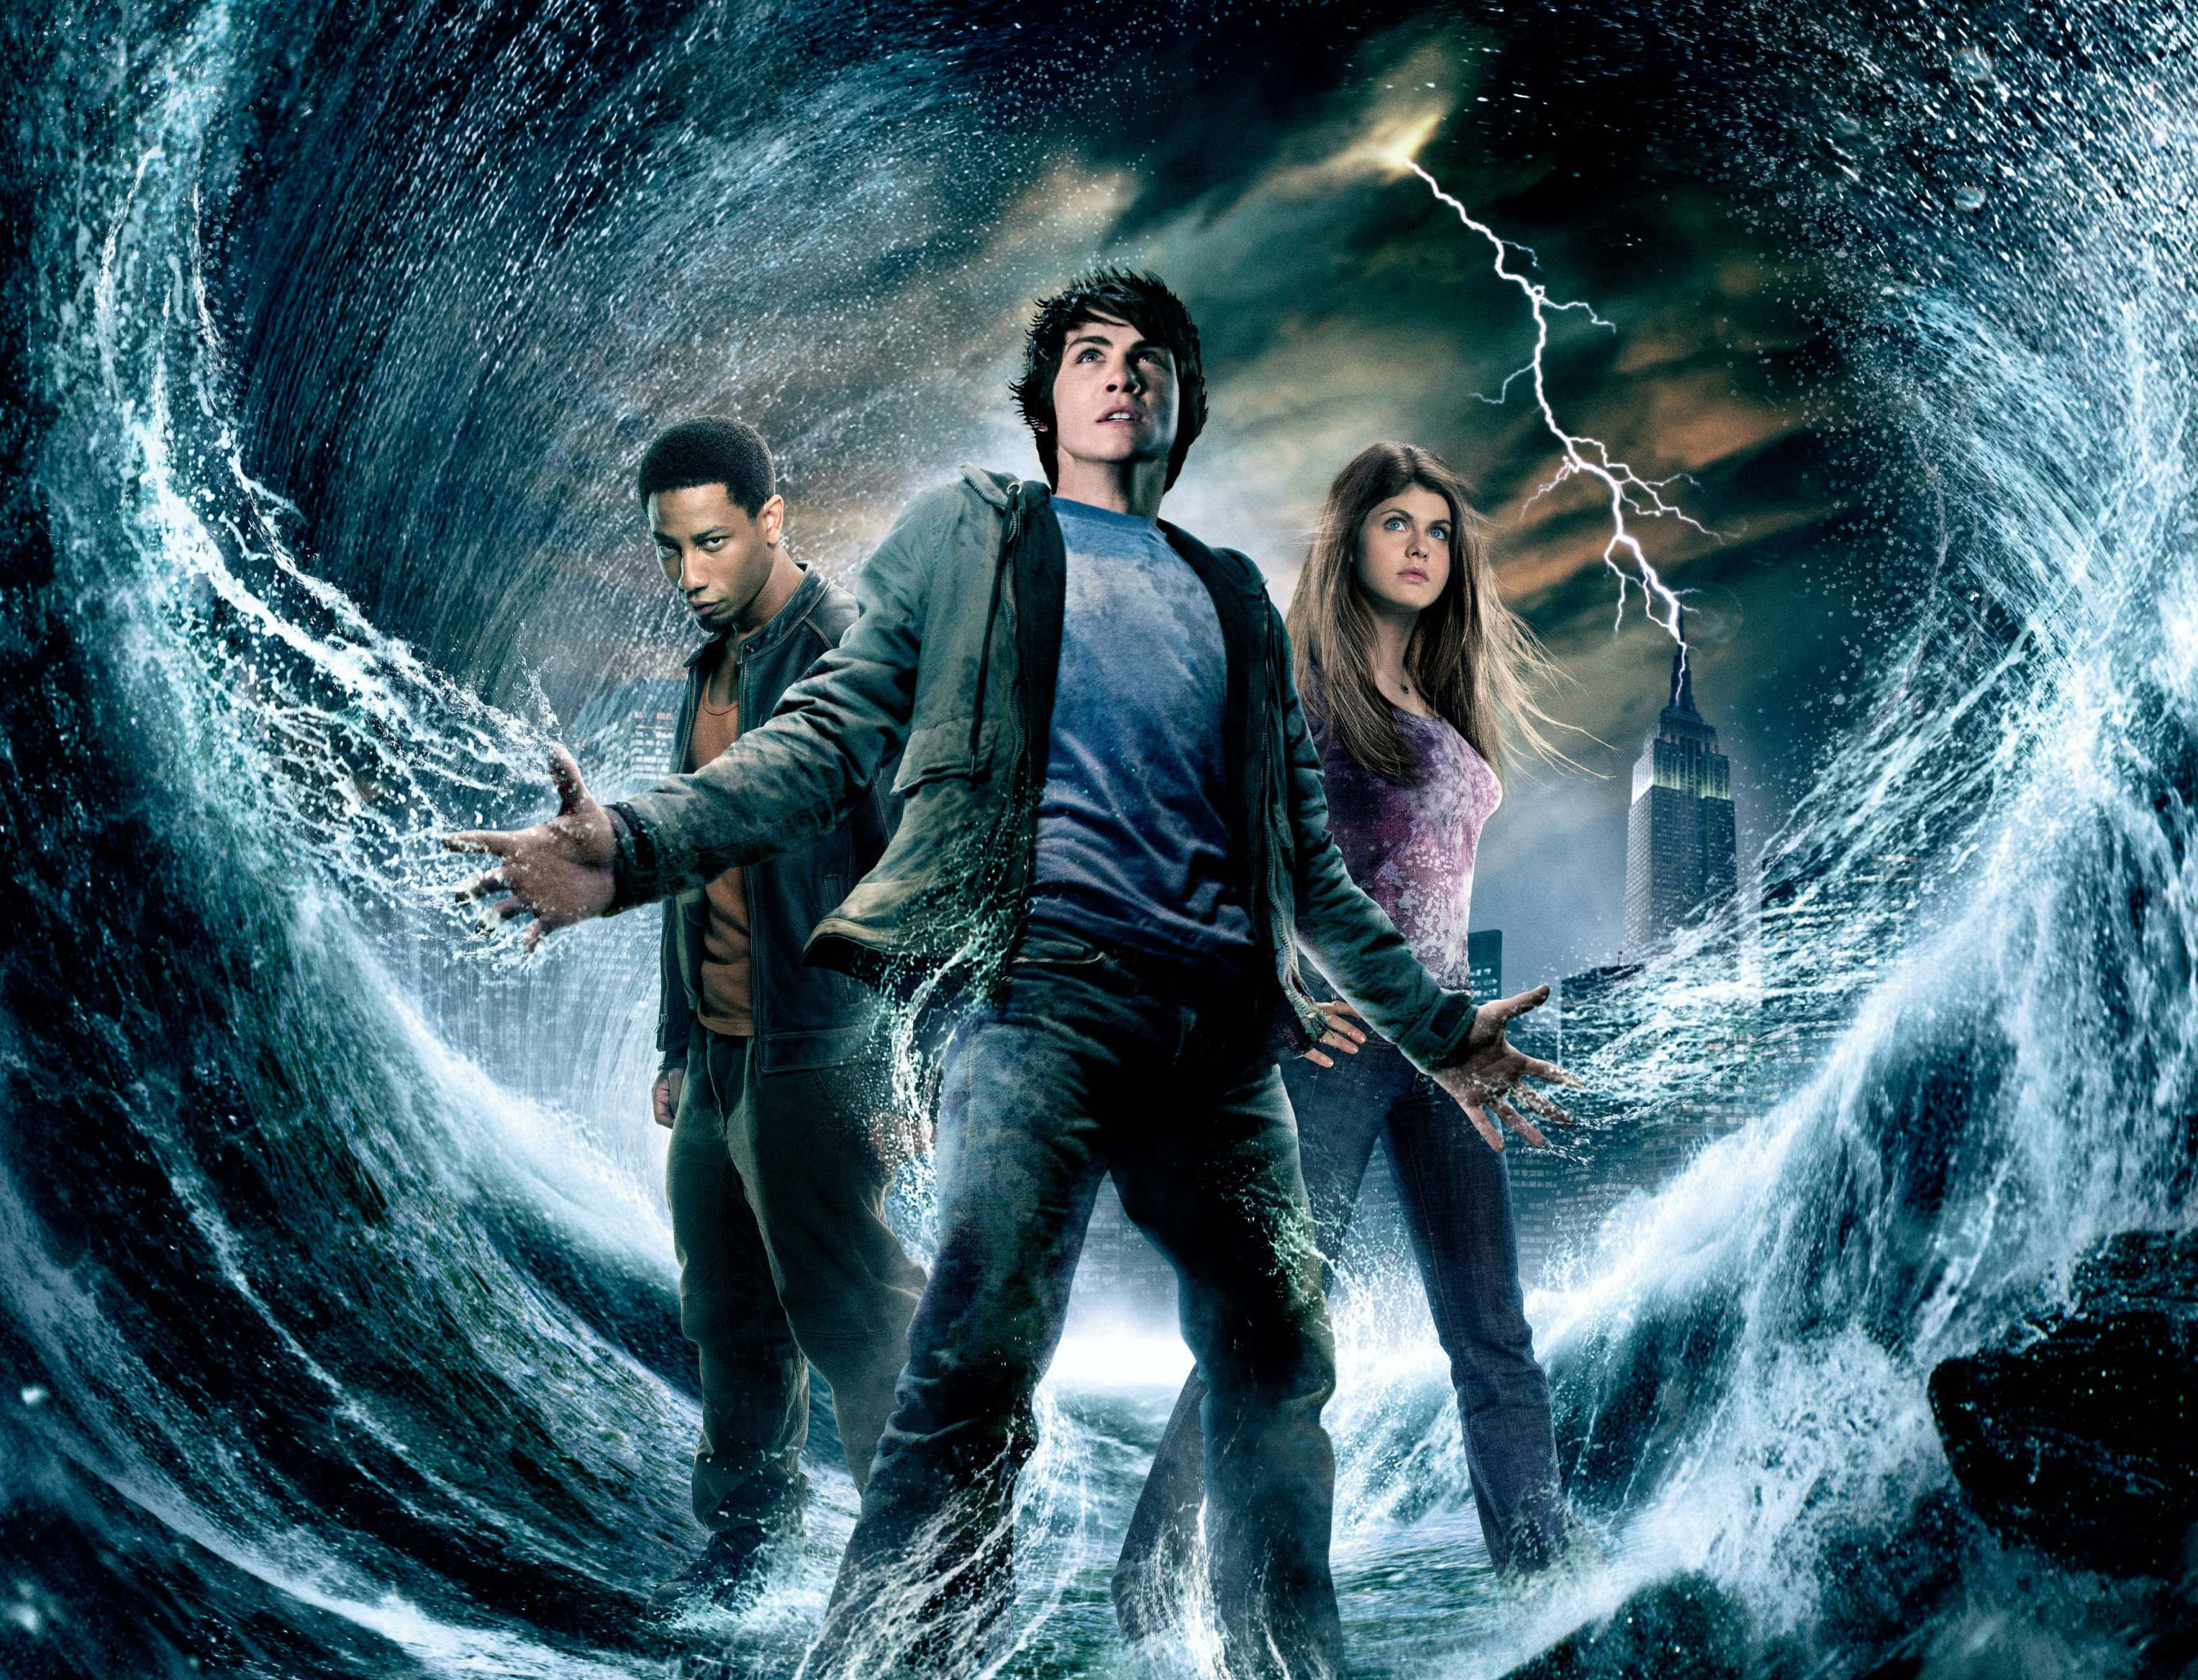 Percy Jackson The Olympians The Lightning Thief Wallpapers Wallpaper Cave